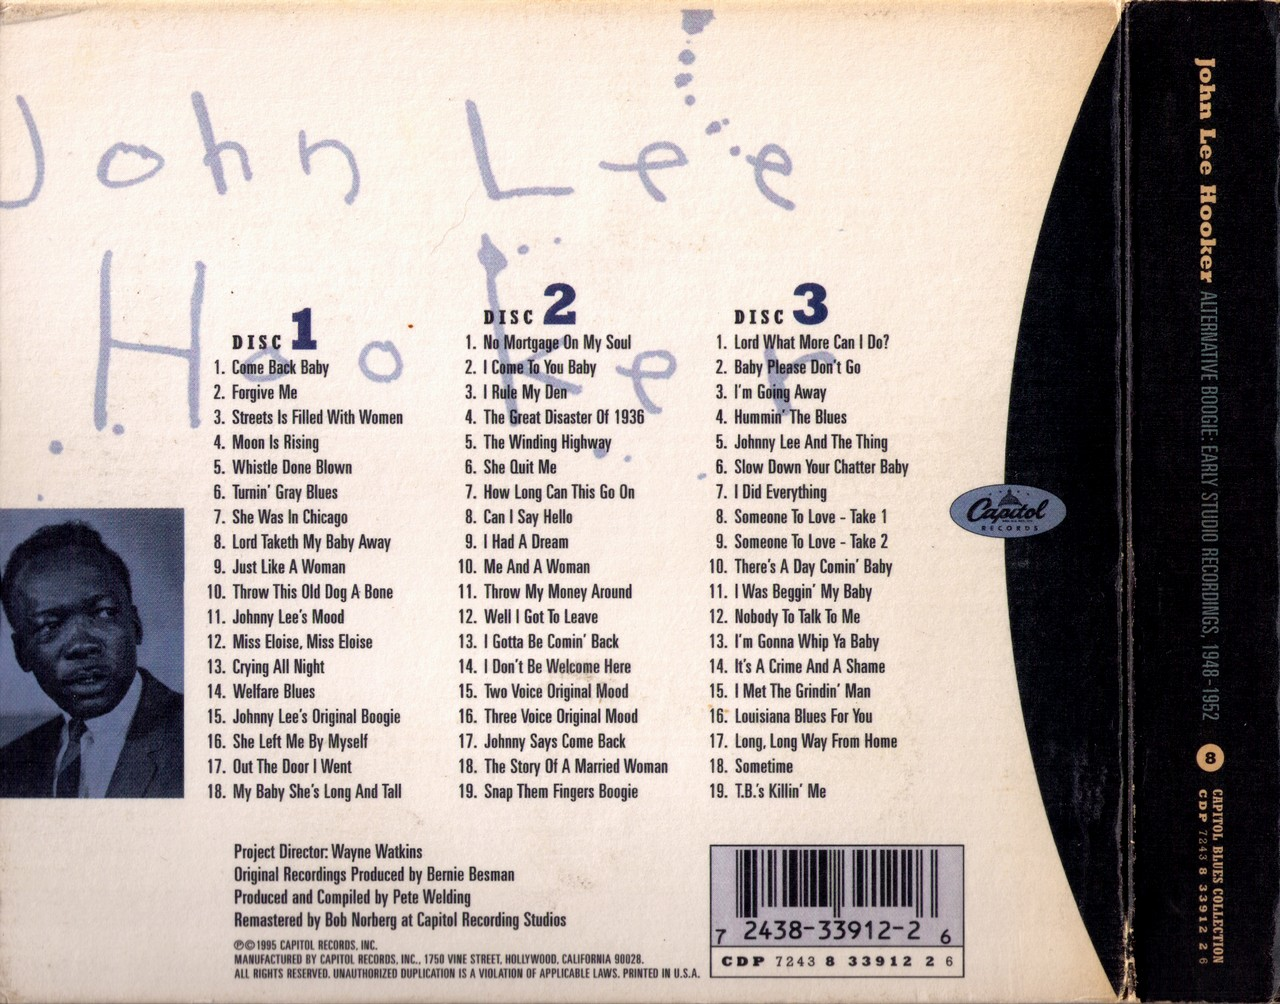 John Lee Hooker - Alternative Boogie: Early Studio Recordings 1948-1952 (1995) {3CD Box Set}